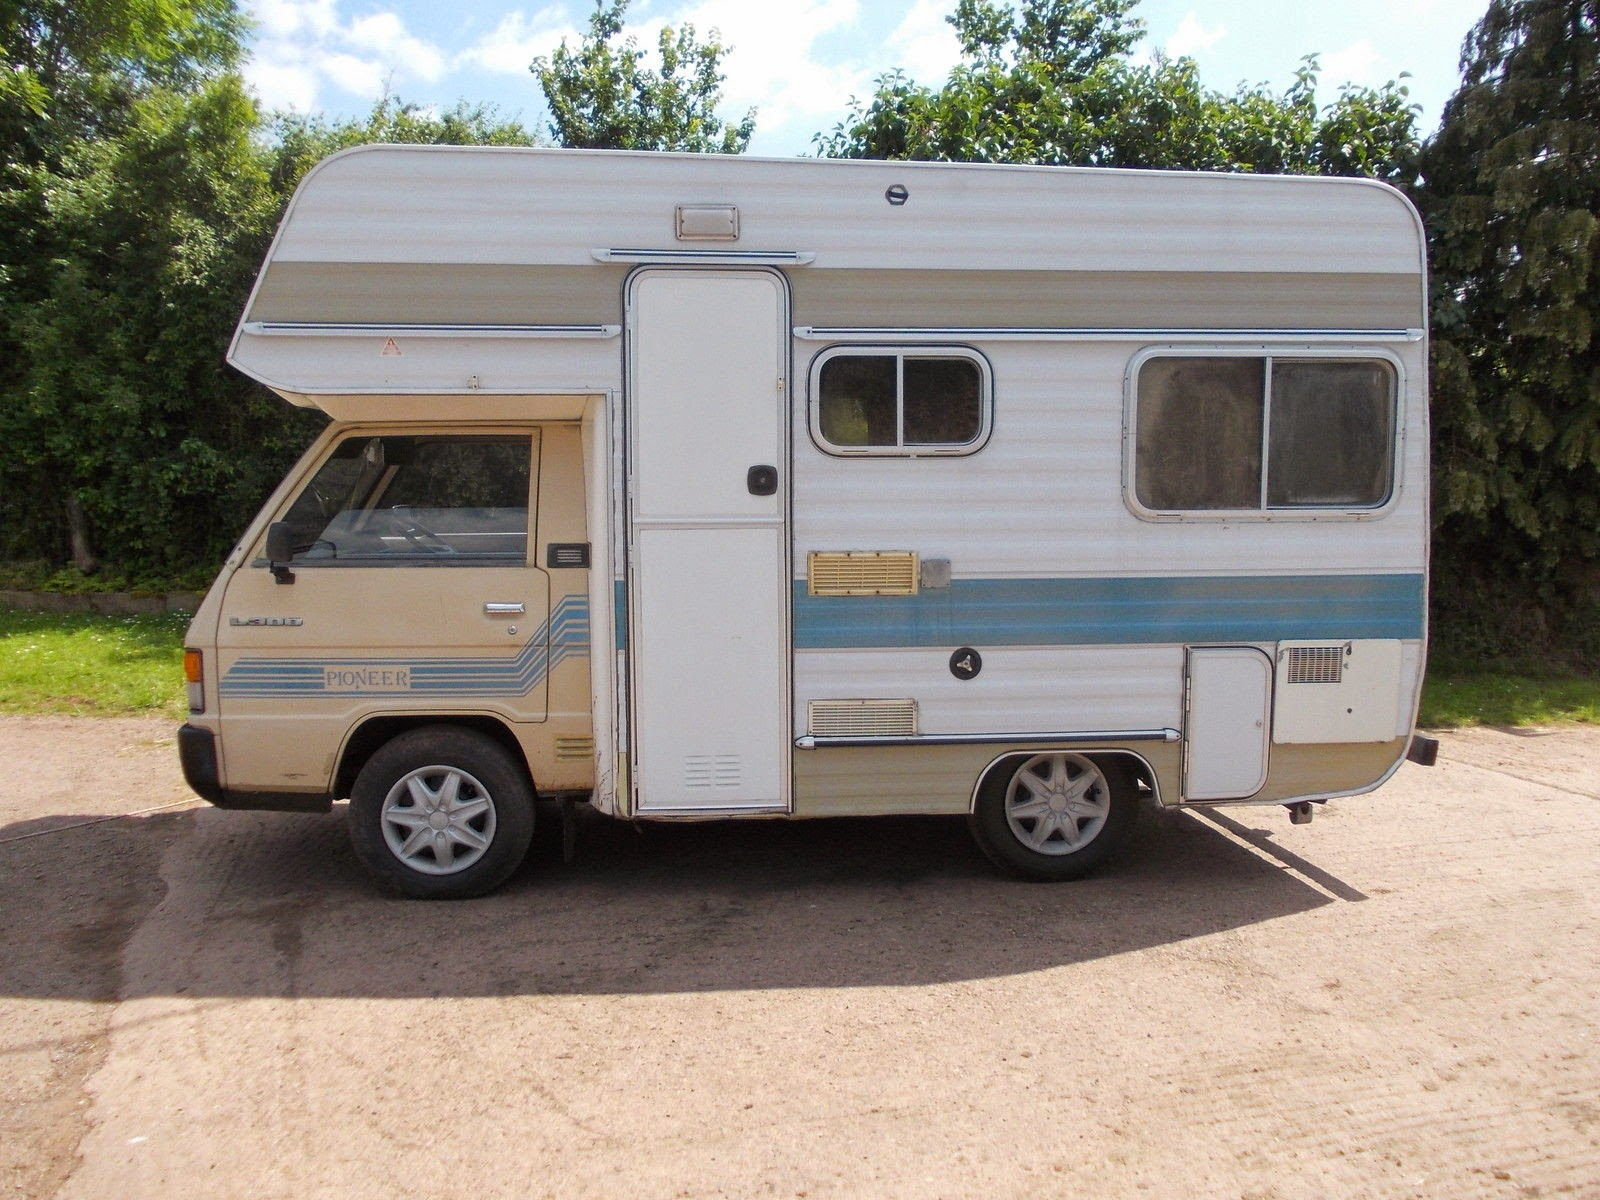 Used Rvs Mitsubishi L300 Pioneer Small Motorhome For Sale